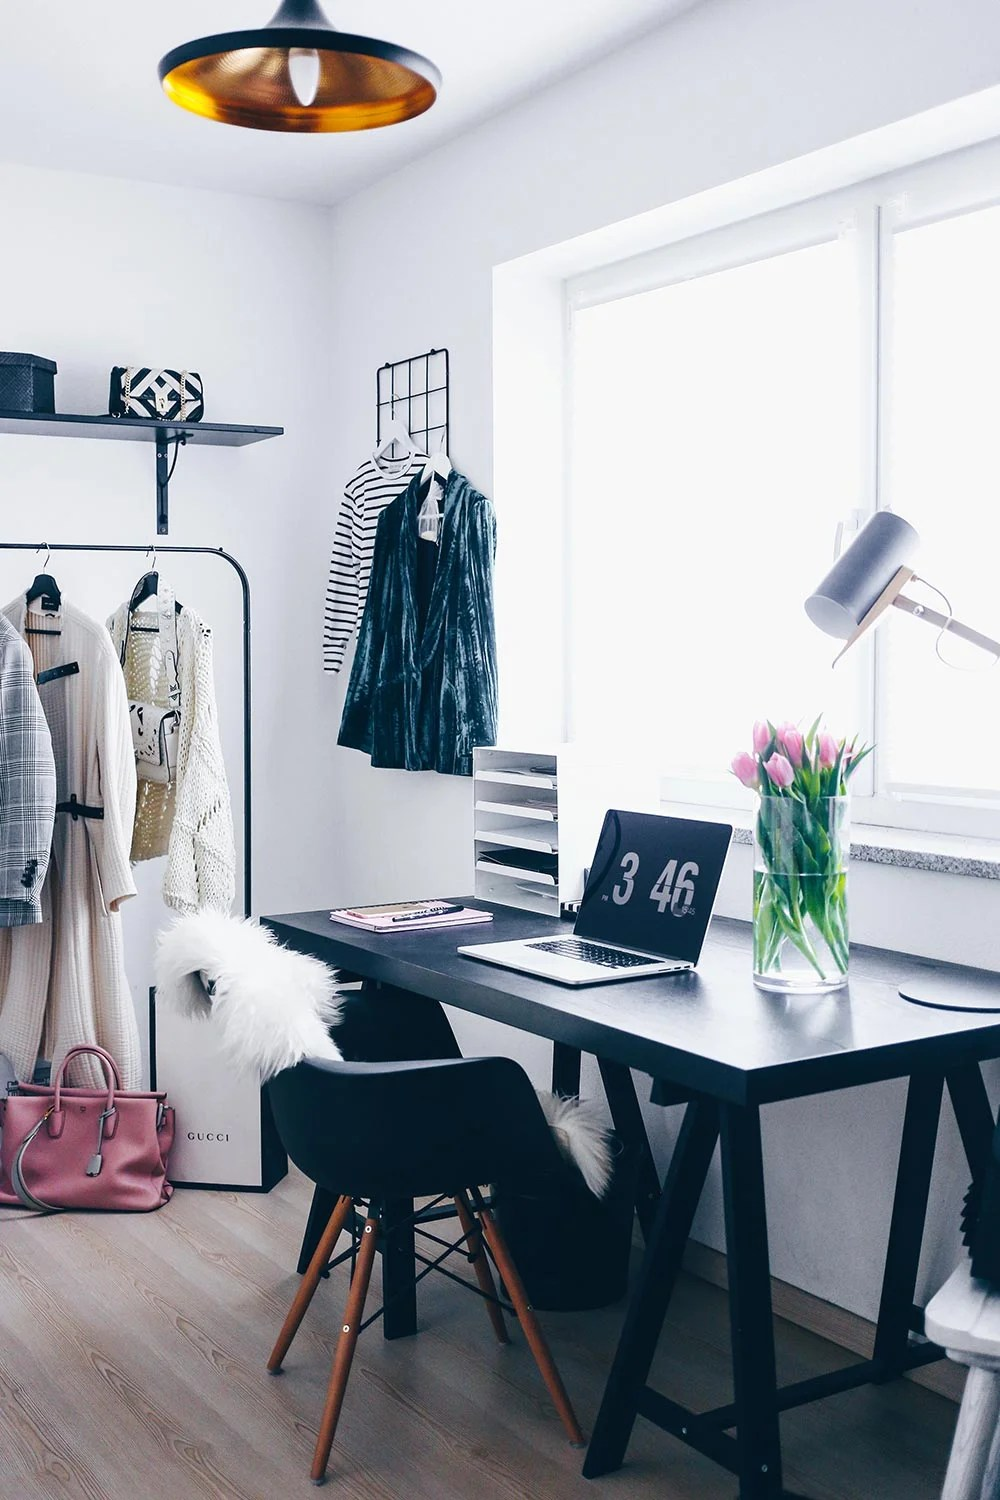 Pinnwand Ikea Mein Blogger Home Office: Stylisch, Aber Funktional! - Who